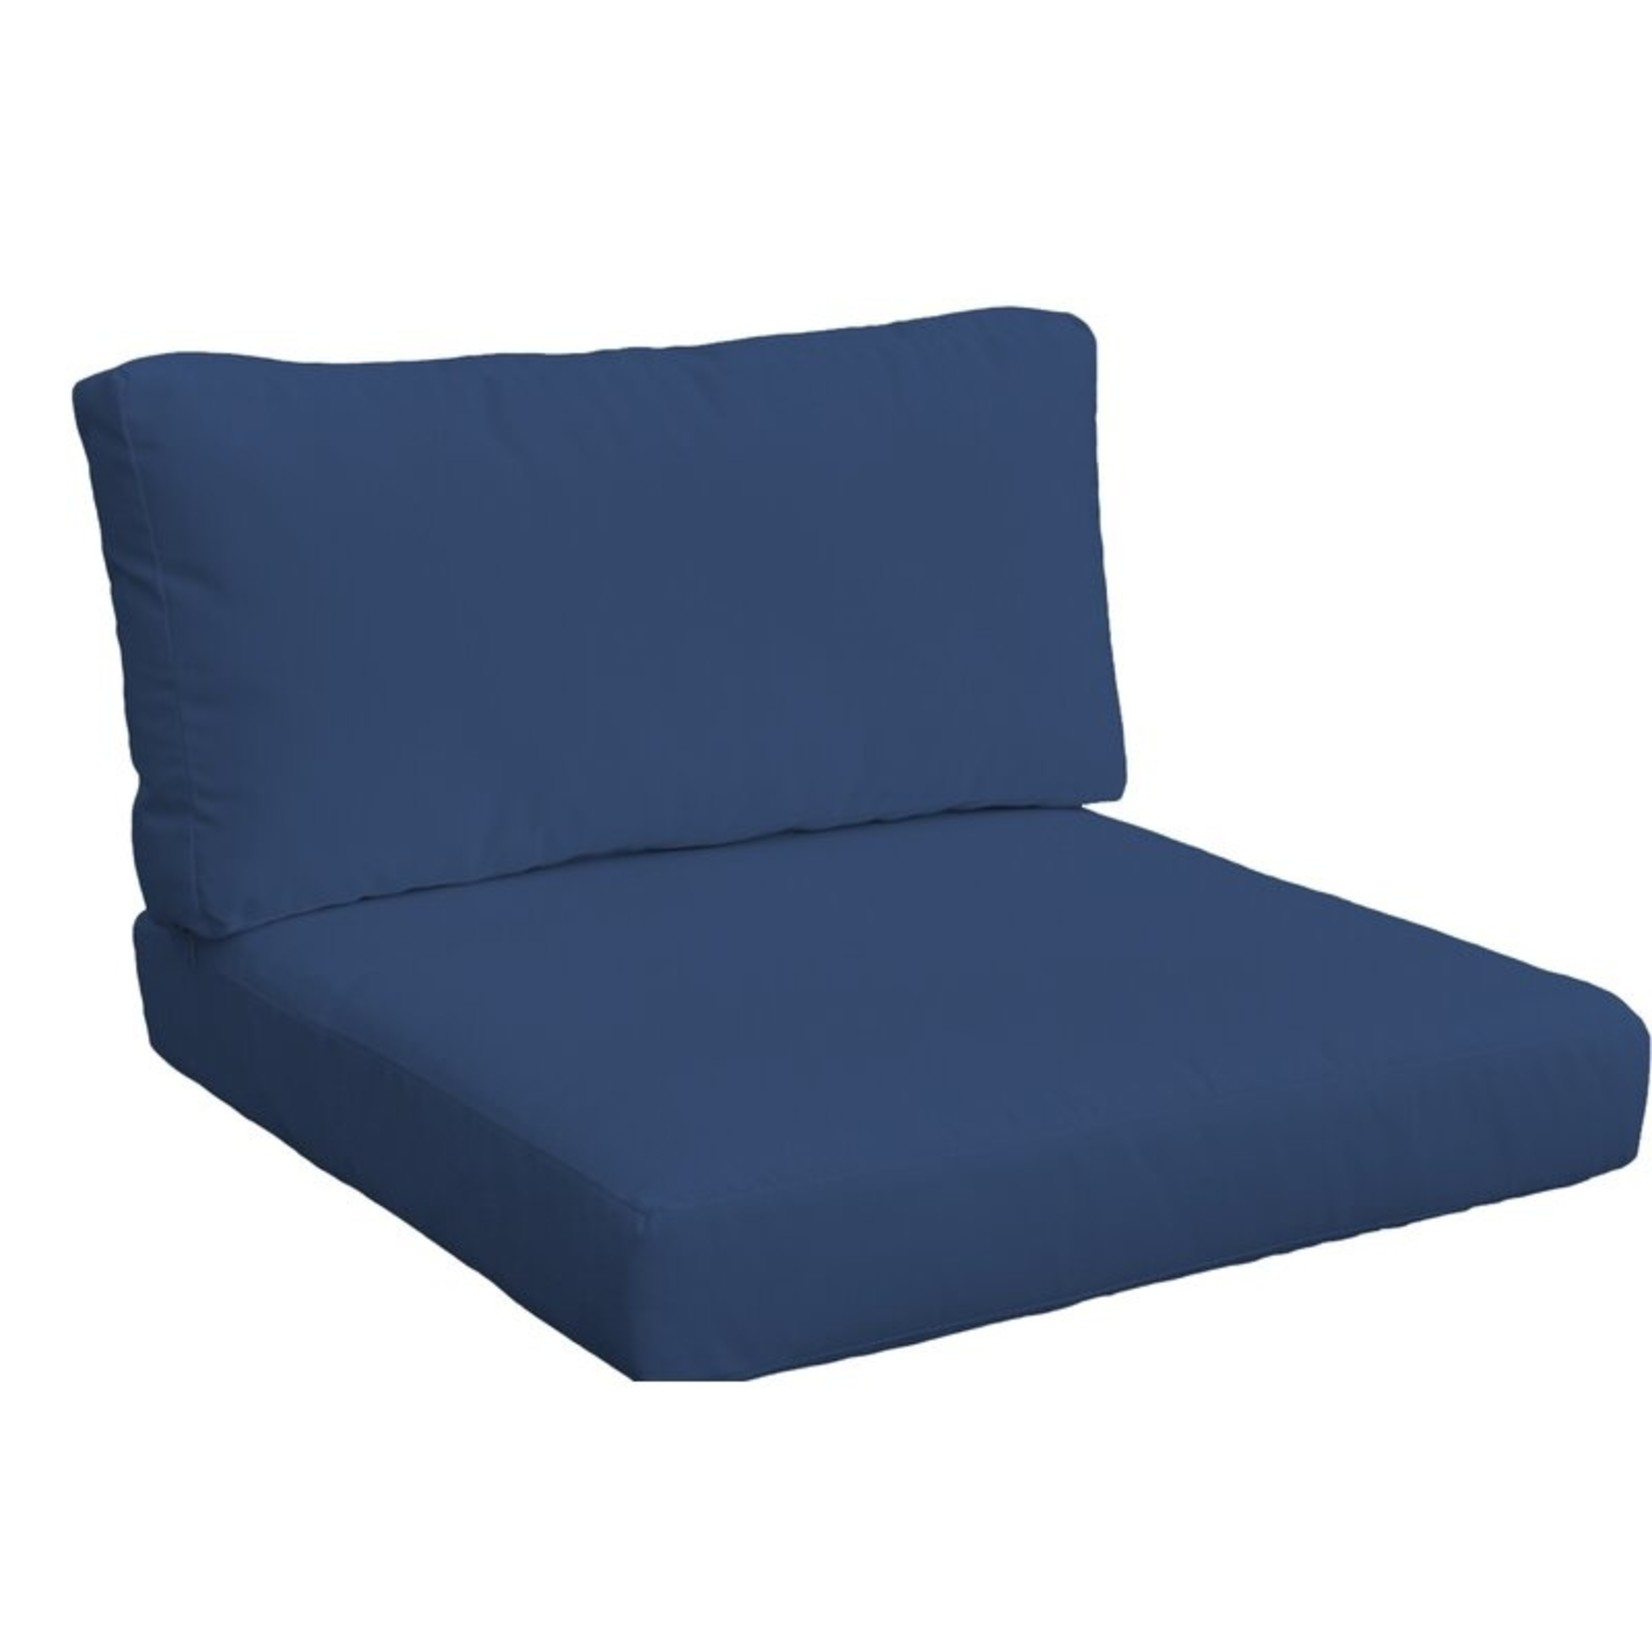 *Indoor/Outdoor Cushion Cover - Navy - 2 Seats. 2 Backs - Covers Only